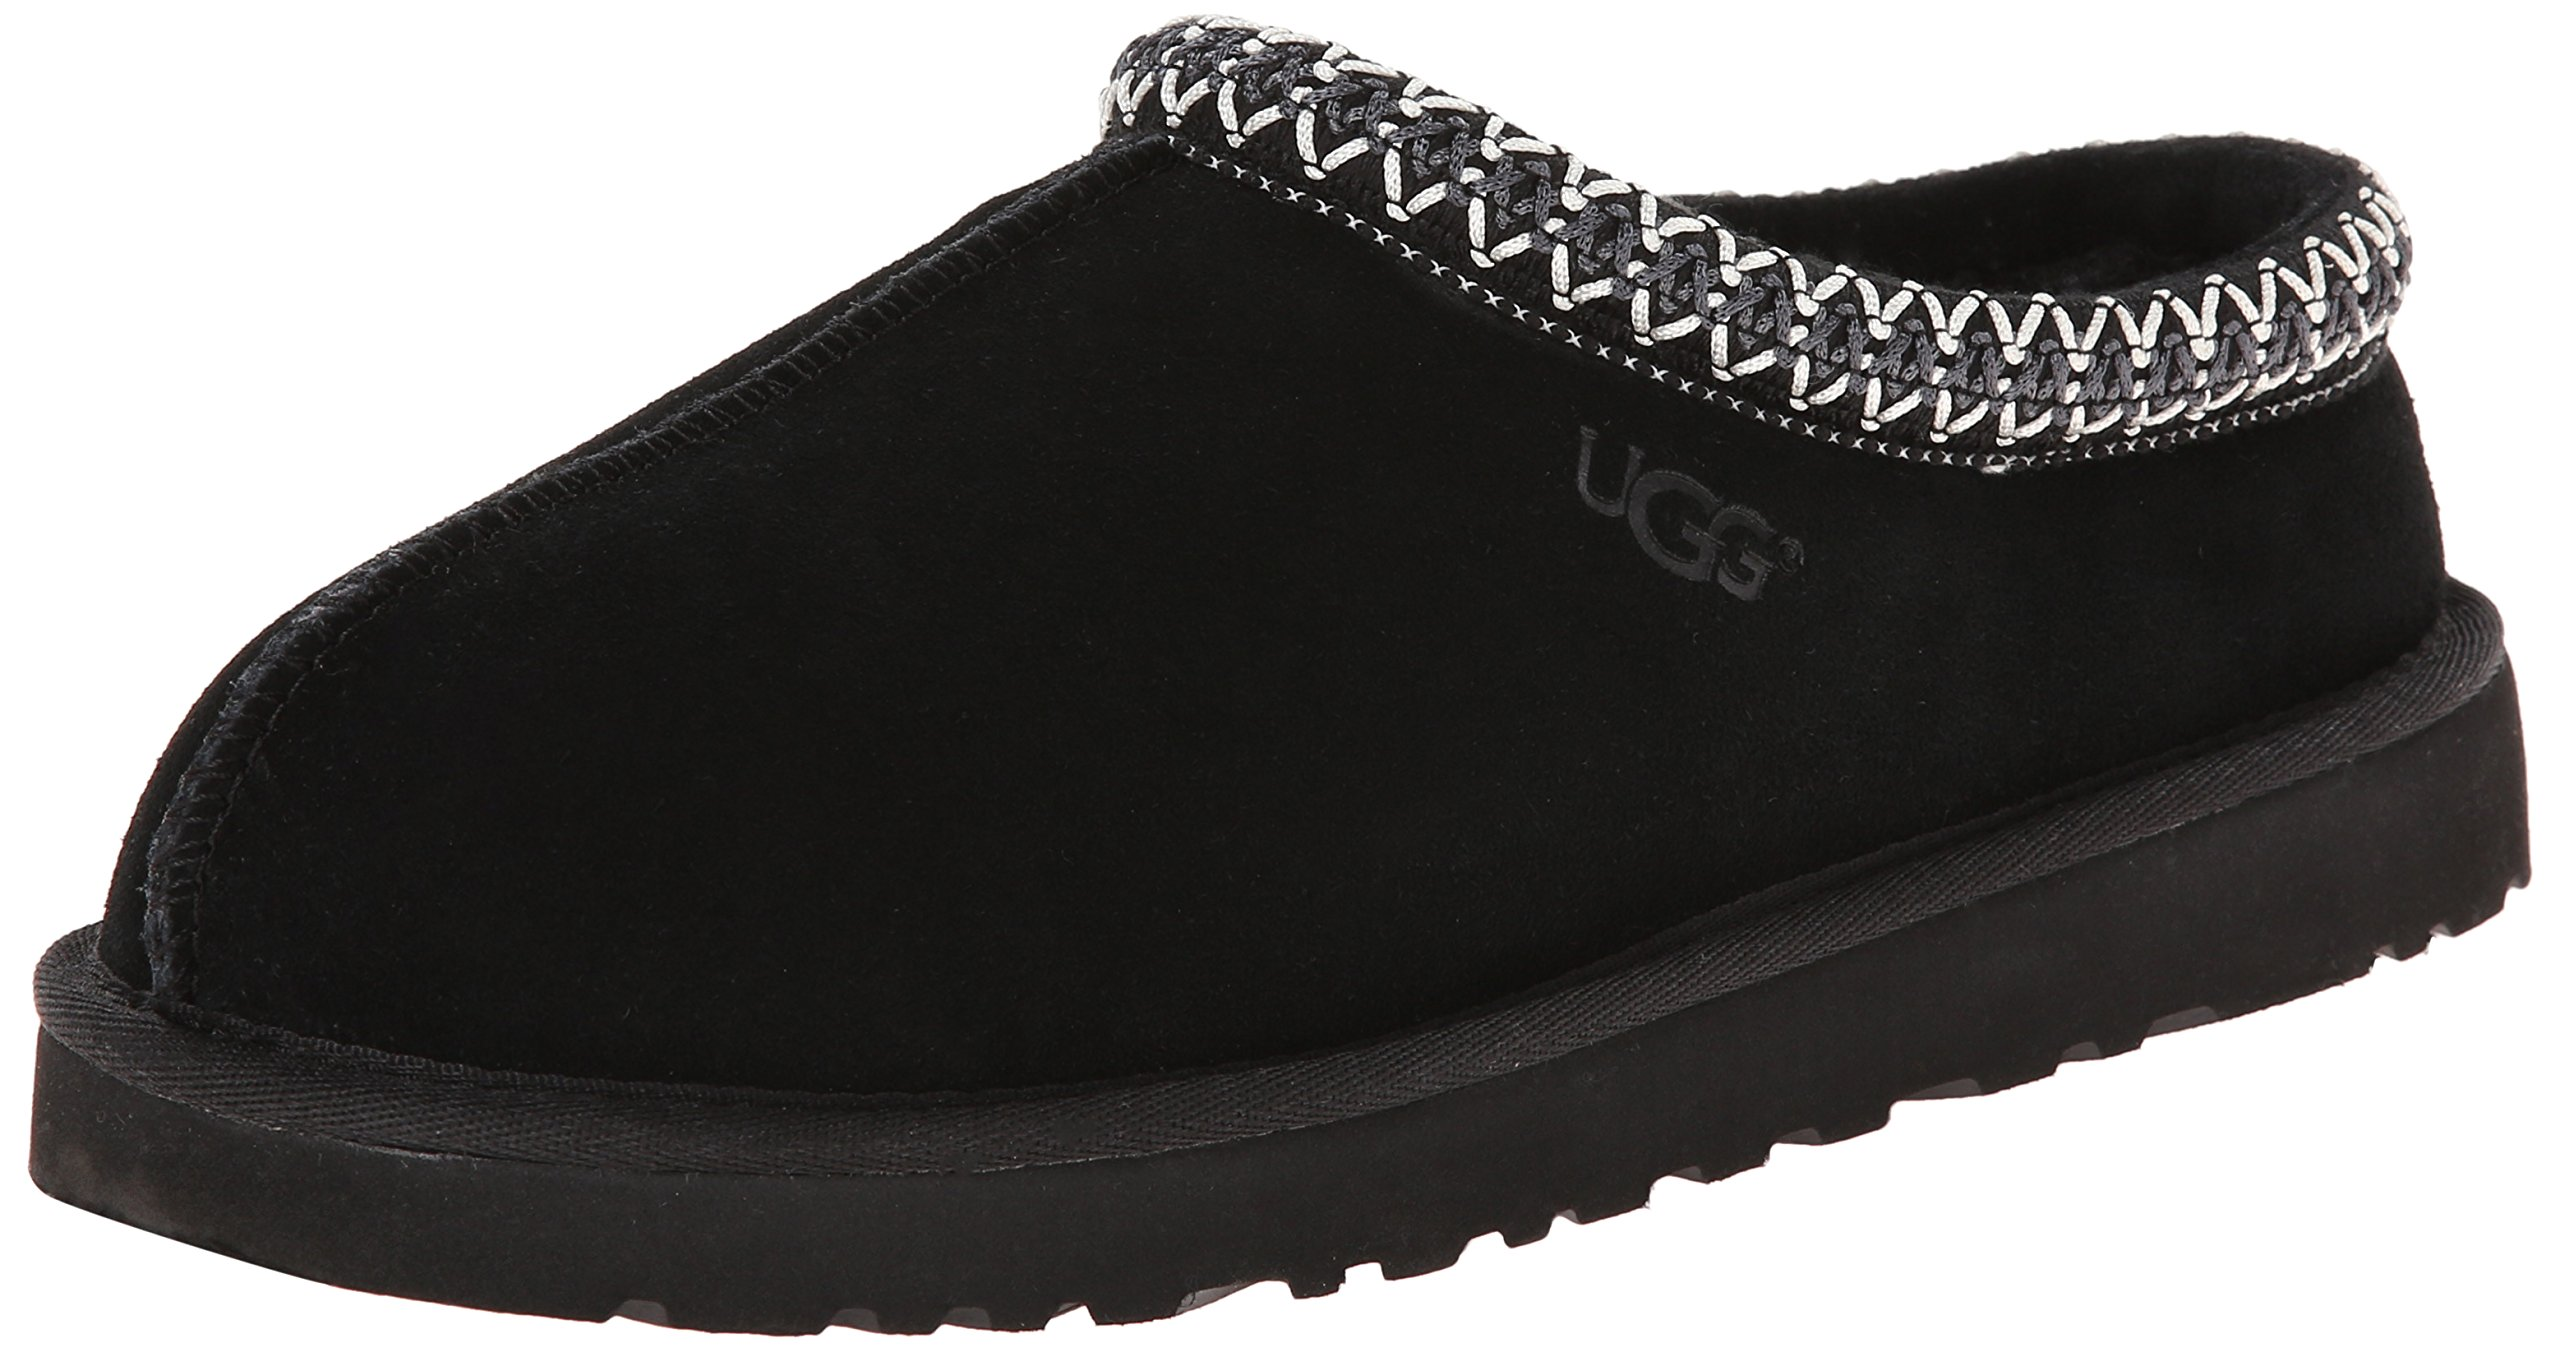 UGG Women's Tasman Slipper, Black, 8 US/8 B US